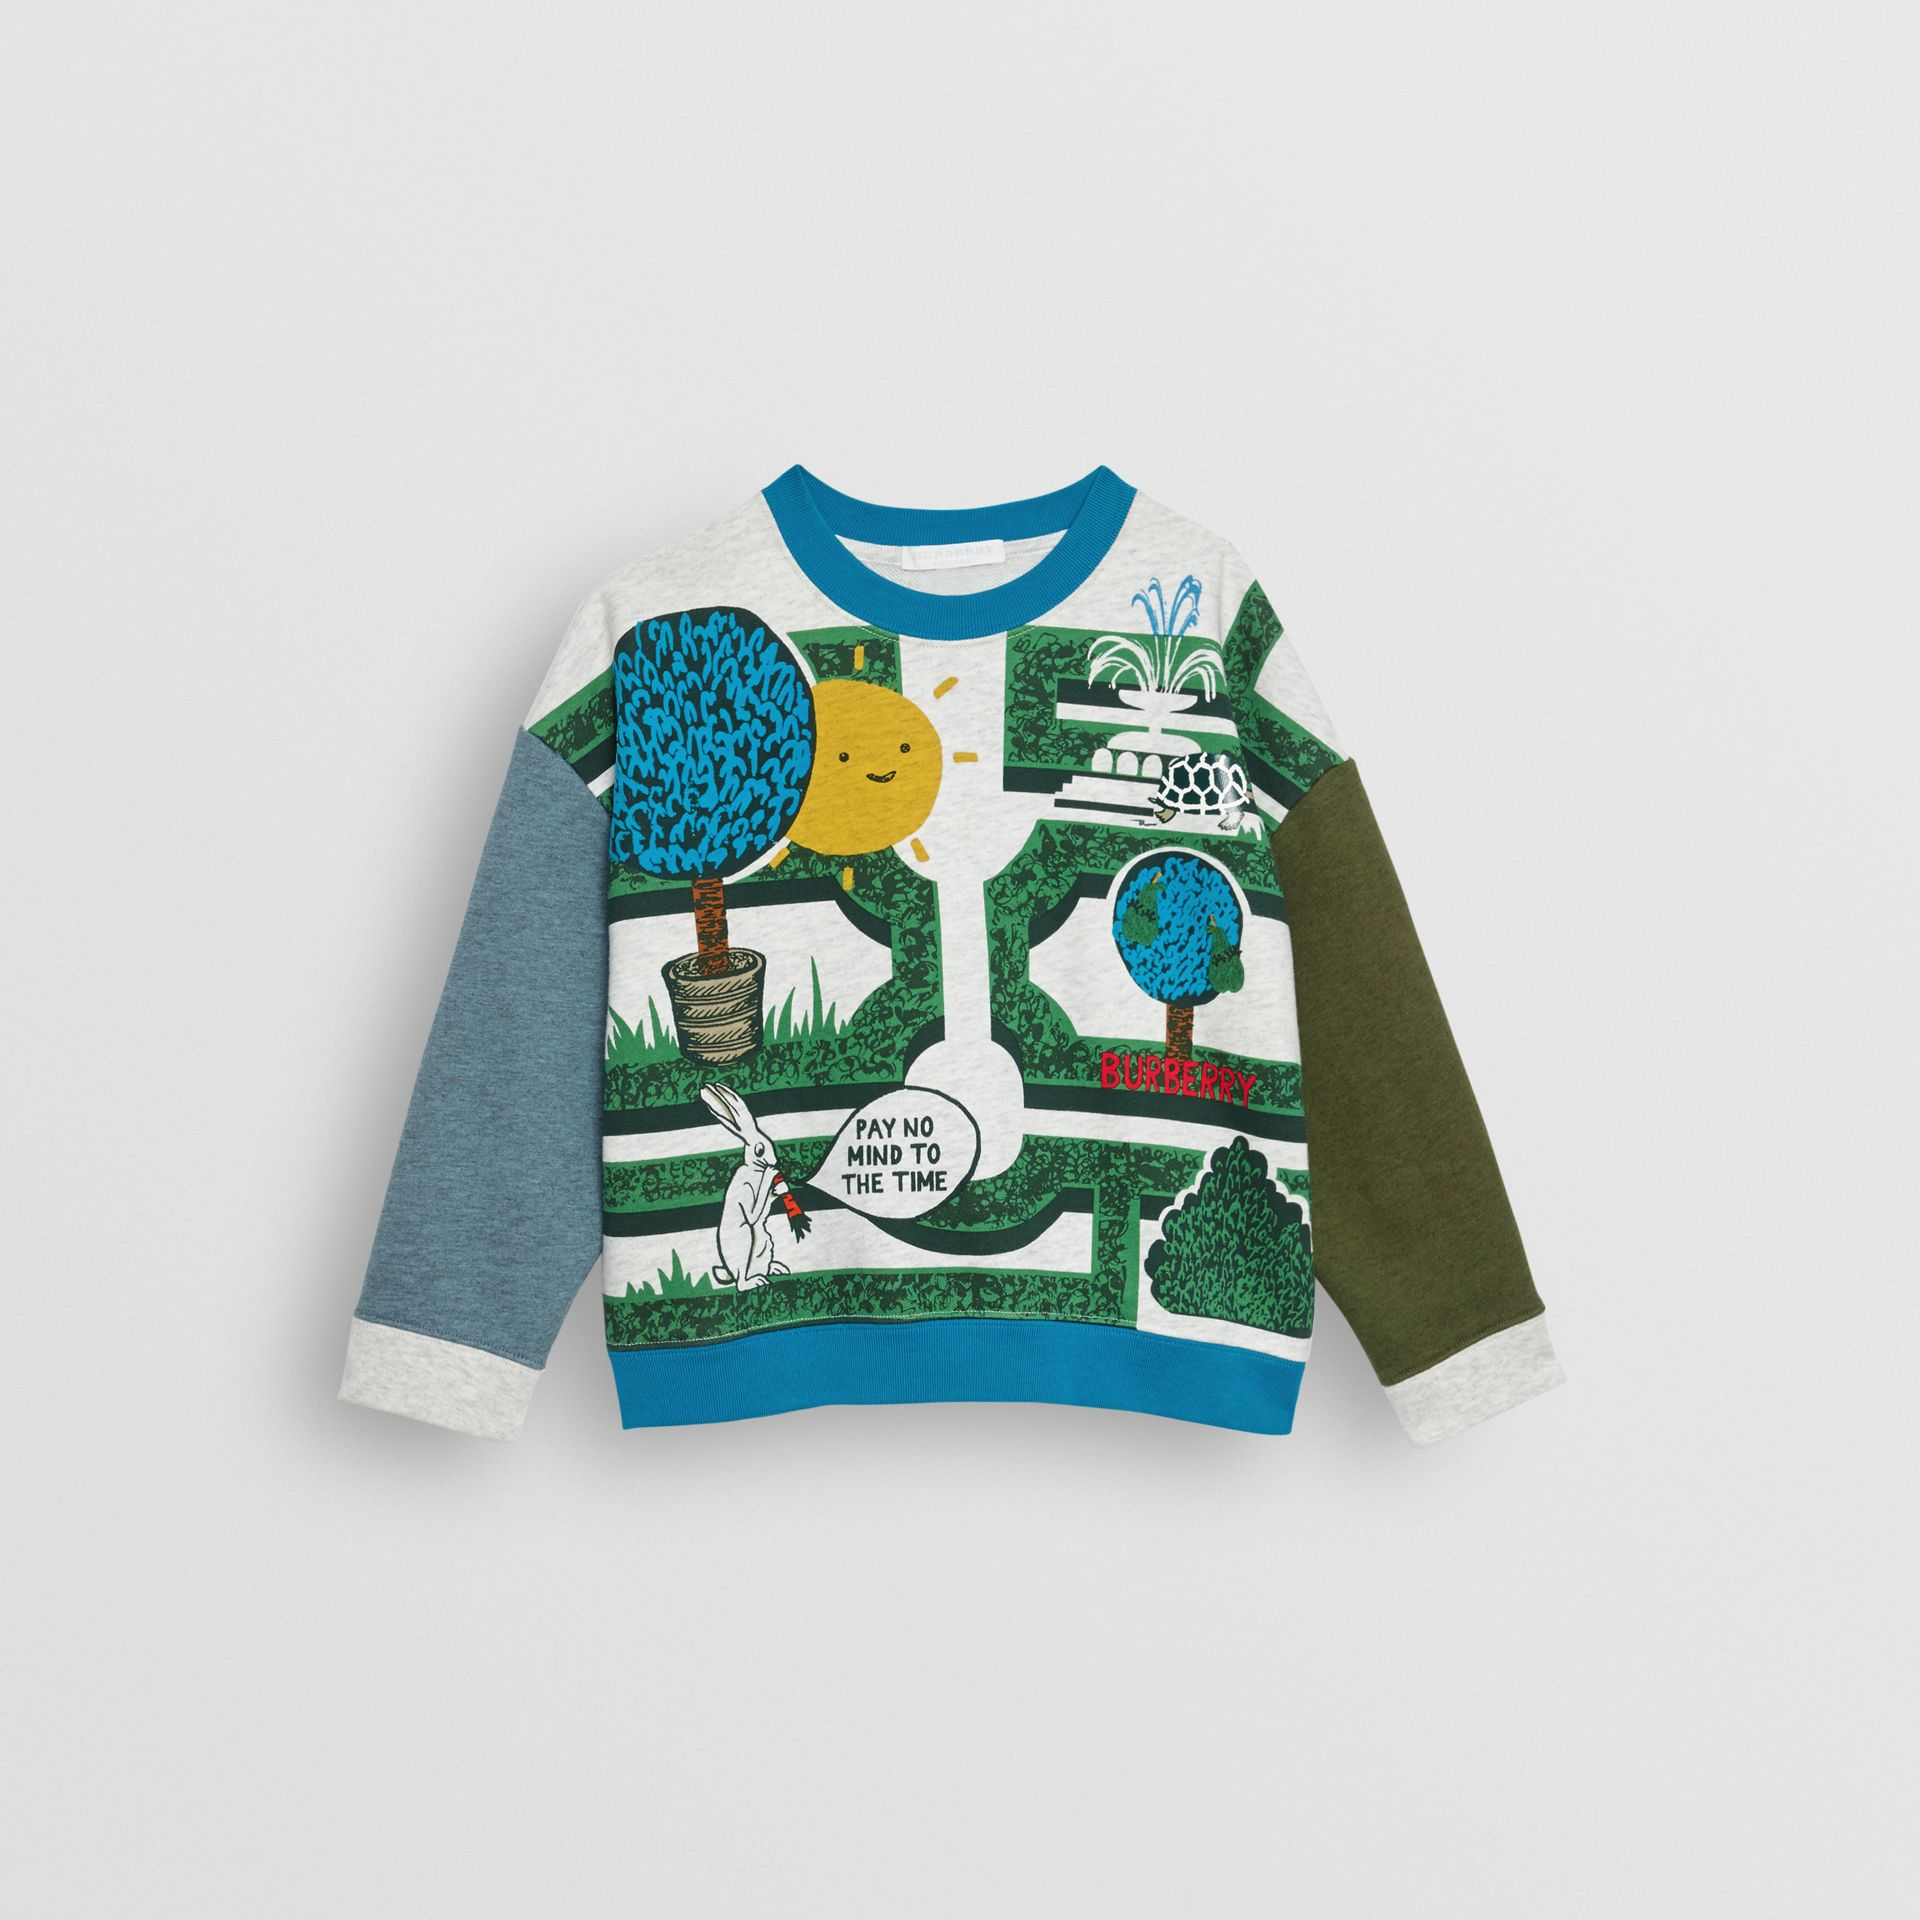 Hedge Maze Print Cotton Sweatshirt in Multicolour | Burberry Canada - gallery image 0